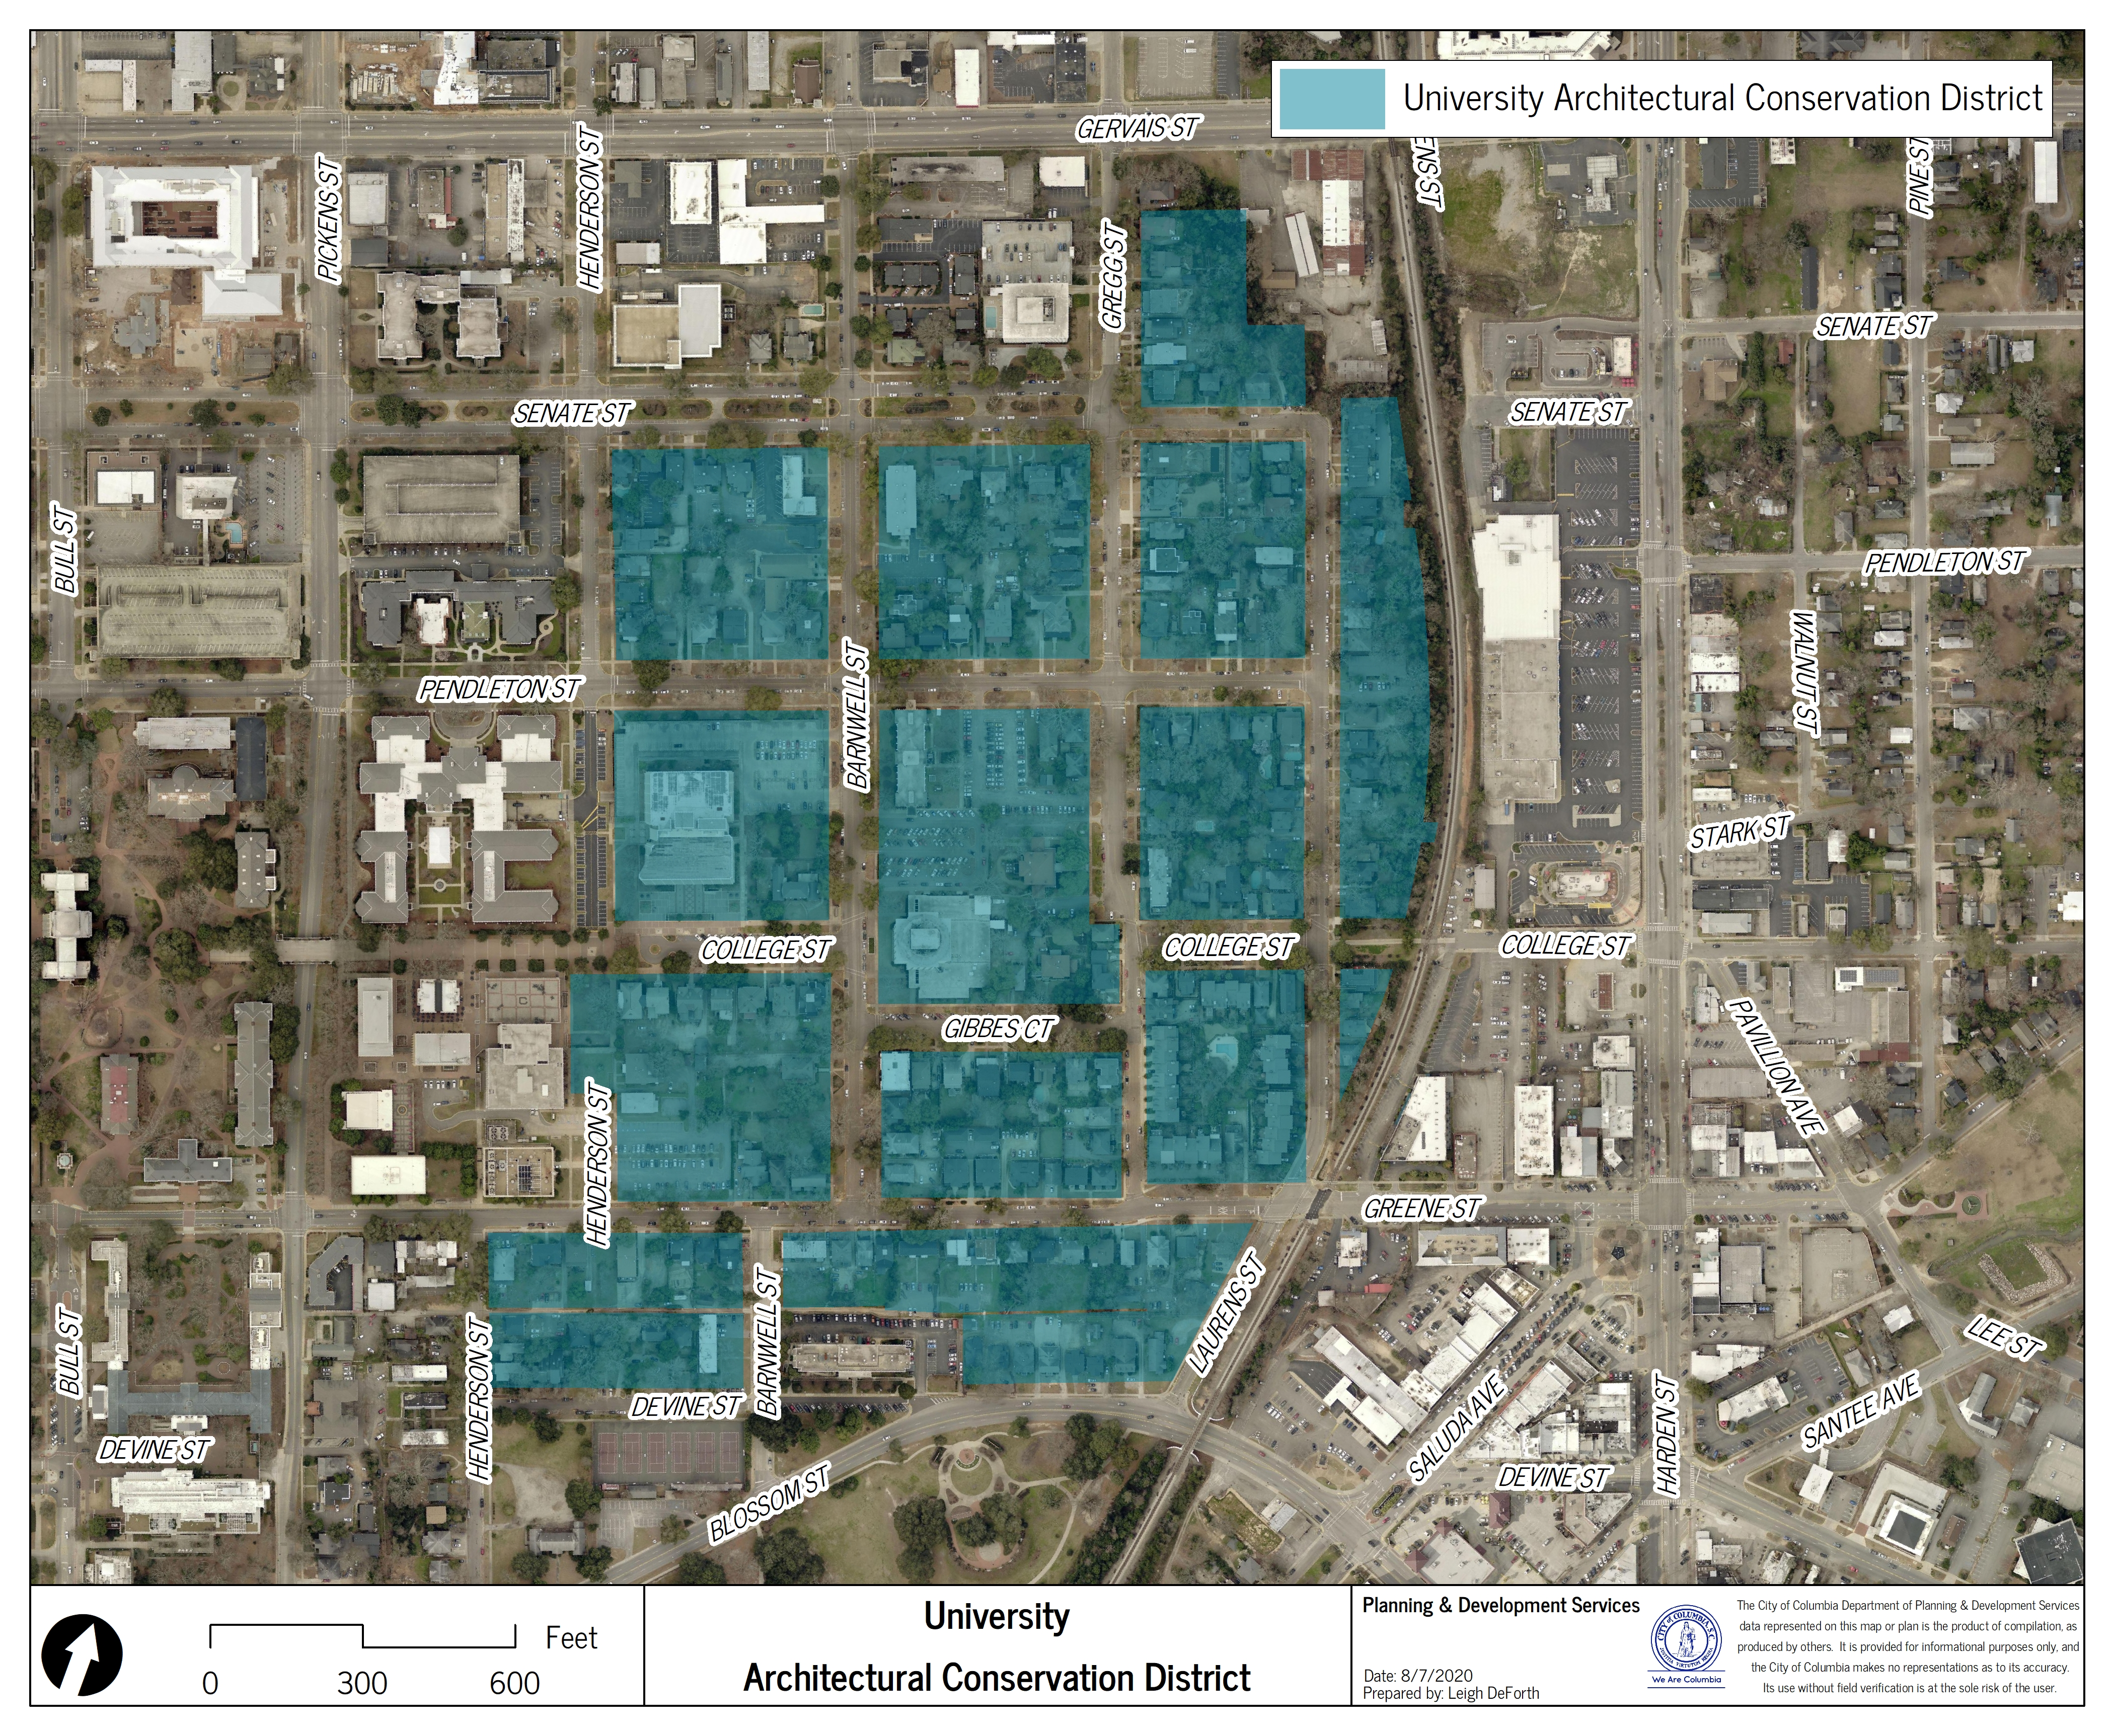 Map of University Architectural Conservation District